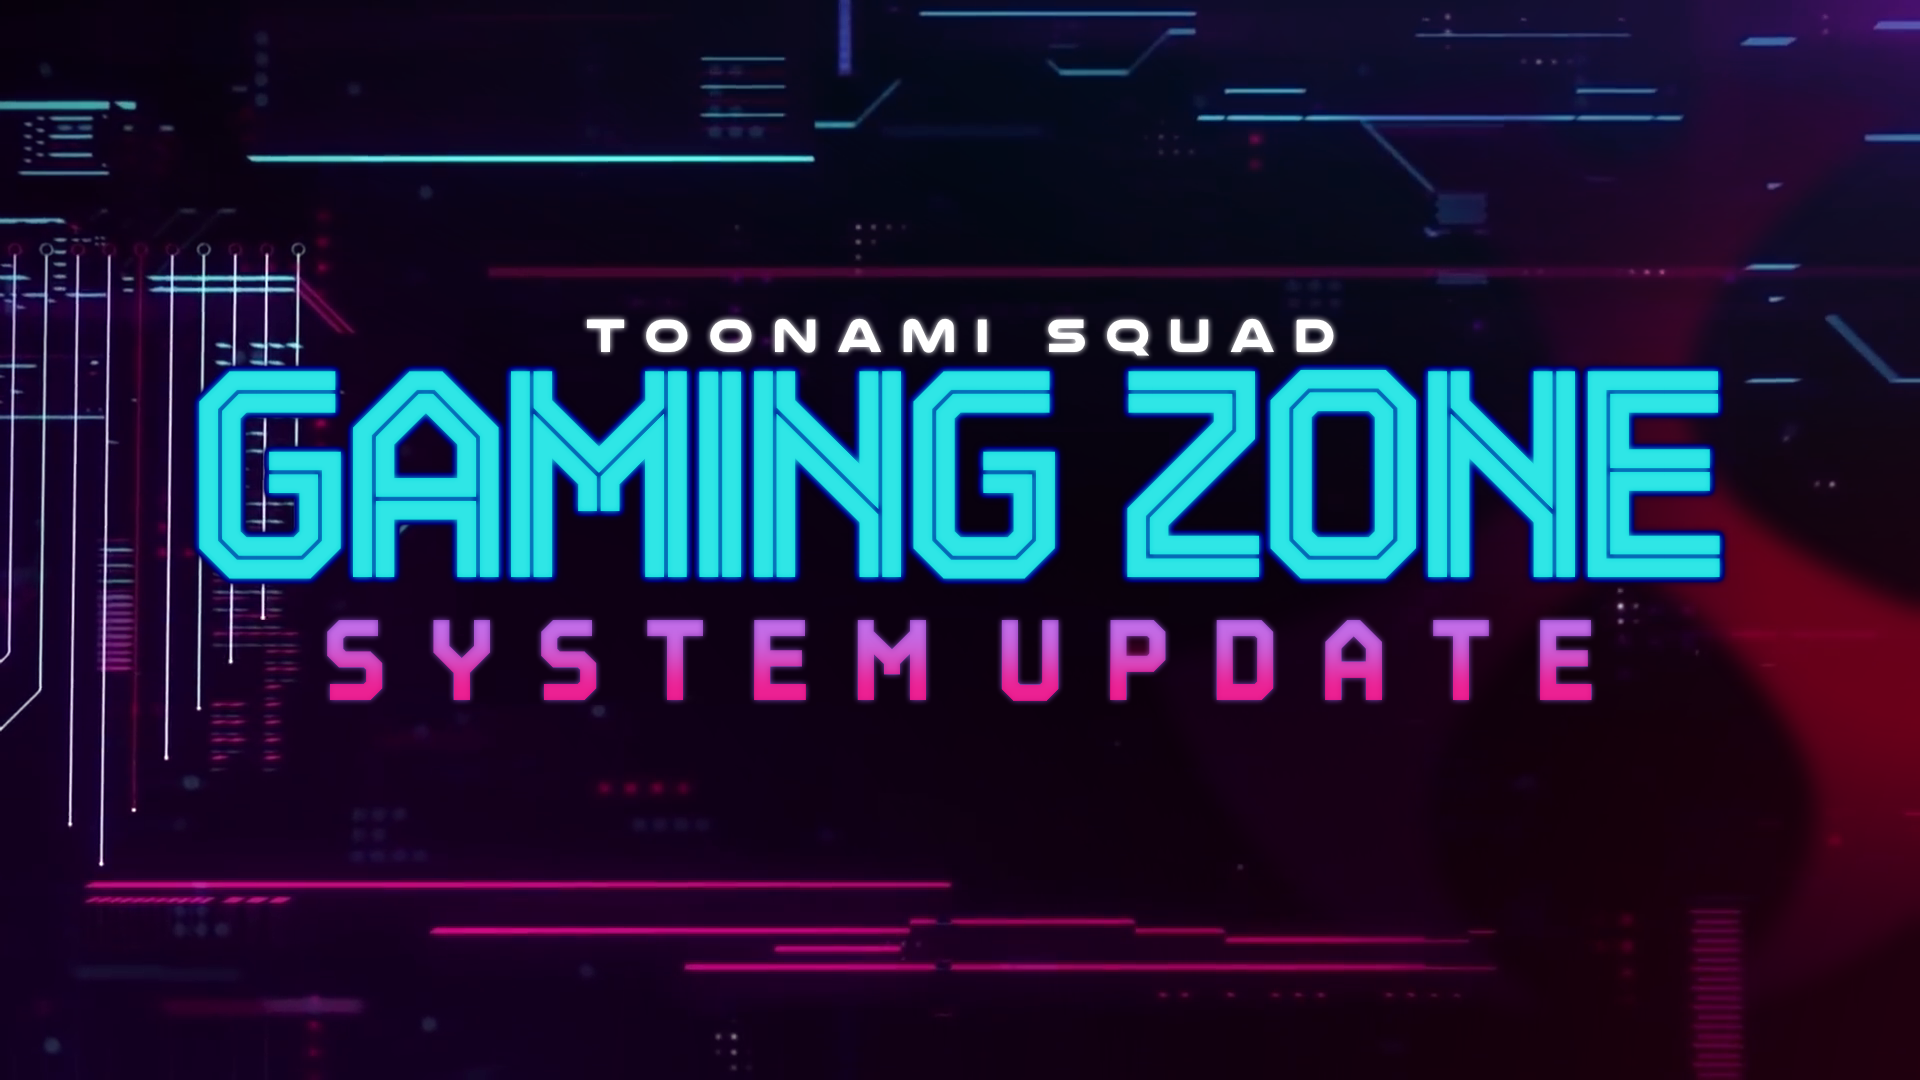 Toonami Squad Gaming Zone System Update 11/15